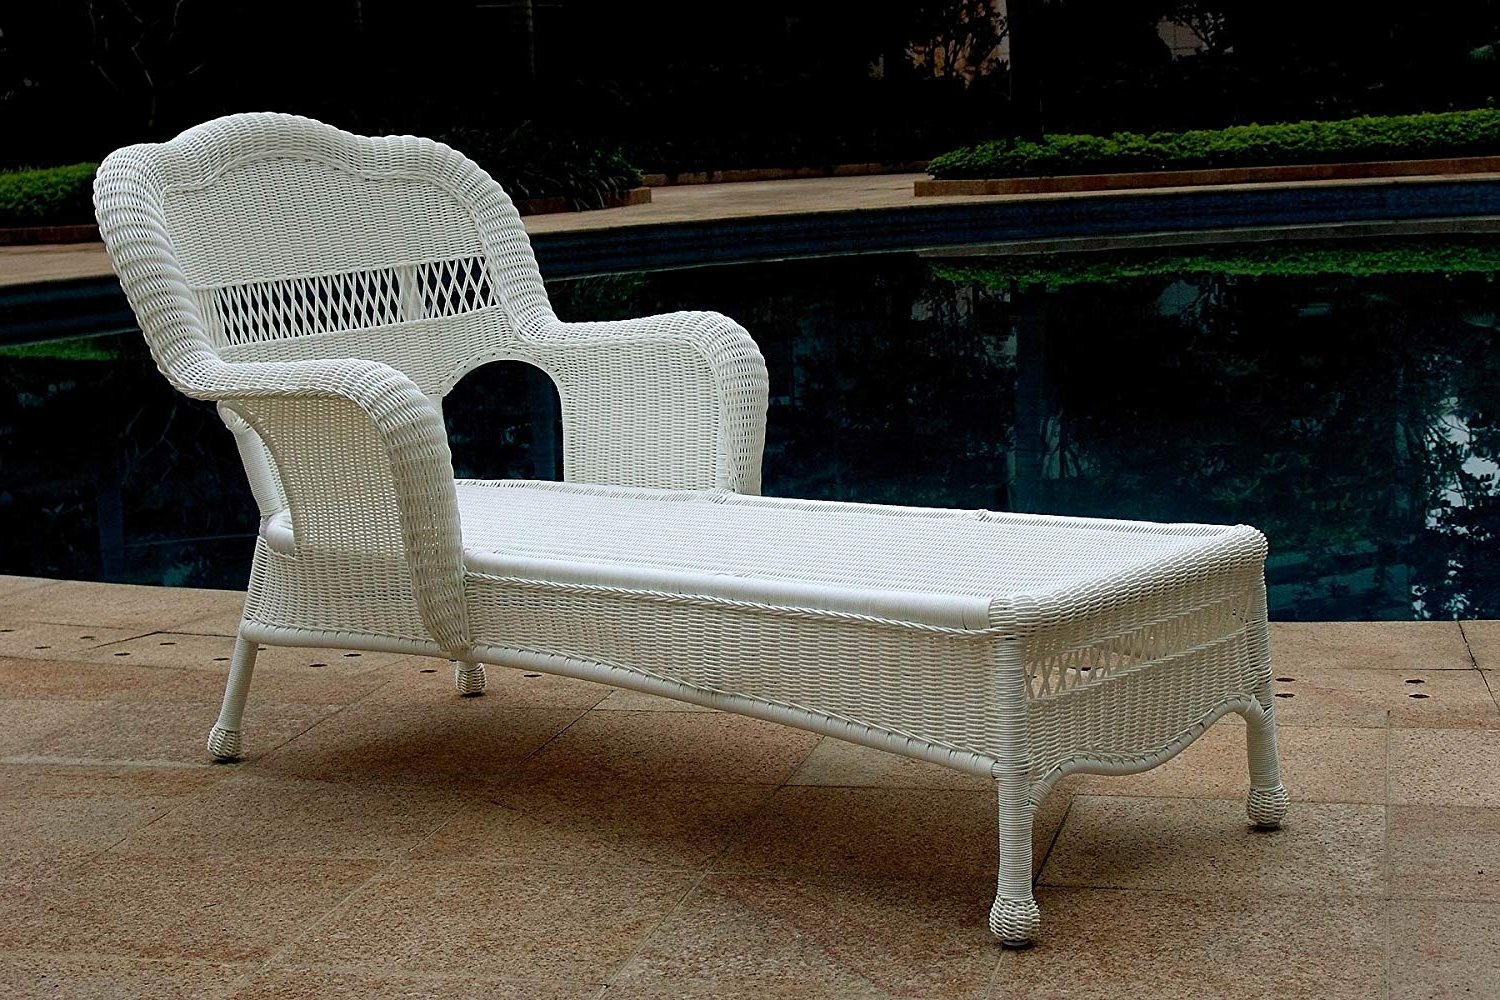 Resin Wicker Multi Position Chaises Pertaining To Best And Newest Cheap White Resin Chaise Lounge, Find White Resin Chaise (View 21 of 25)